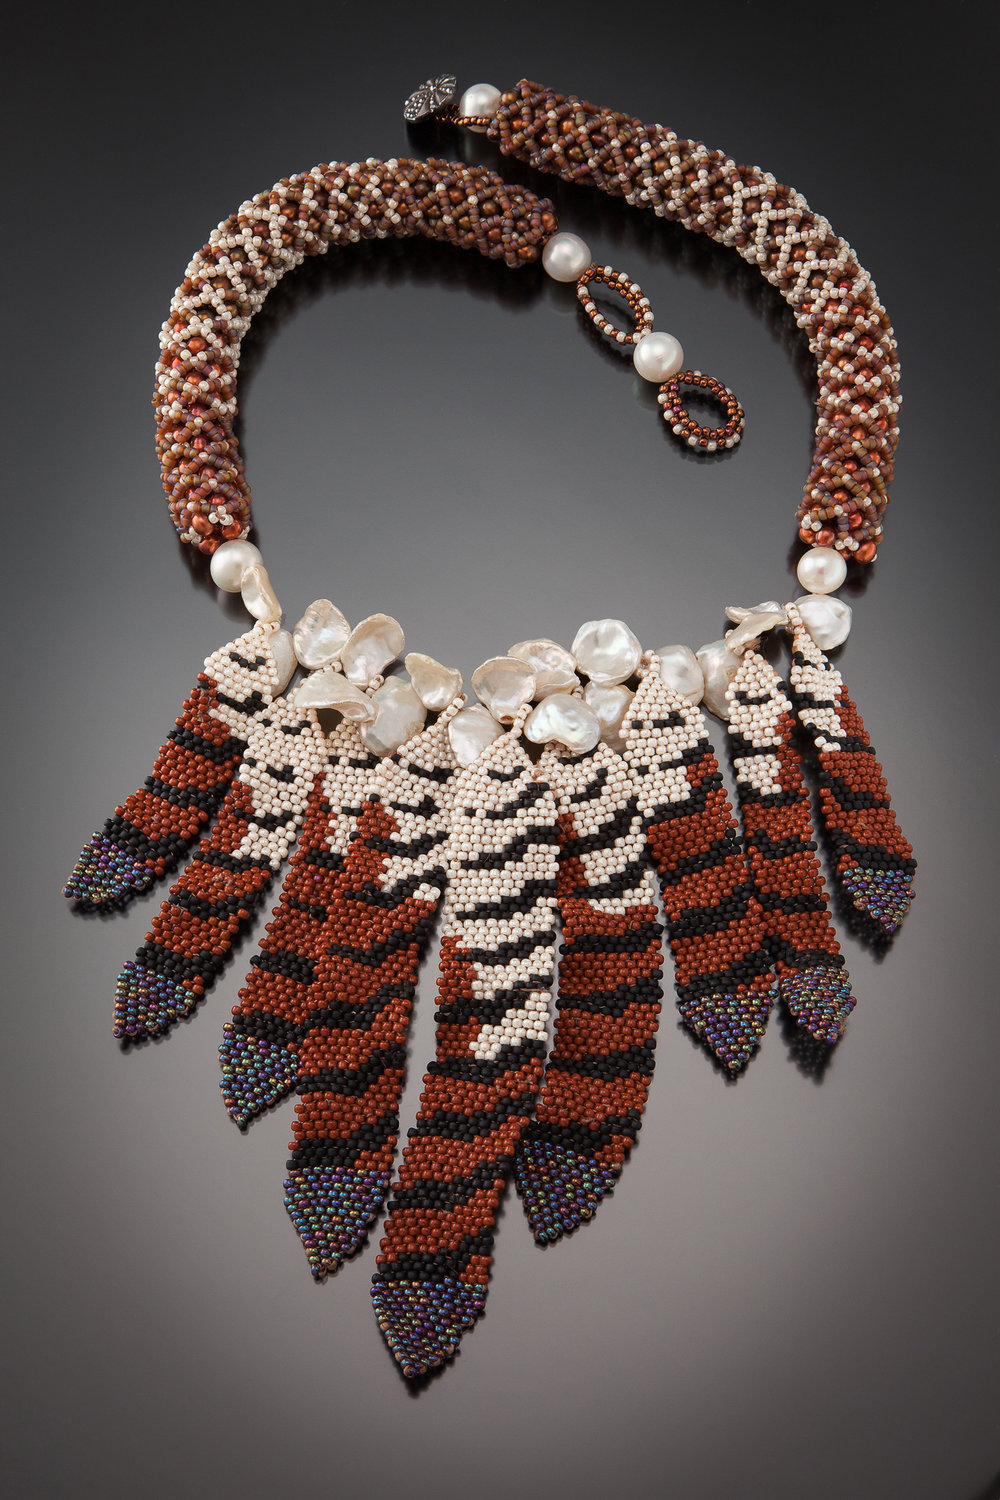 3-karin-alisa-houben-hawk-feather-necklace.jpg